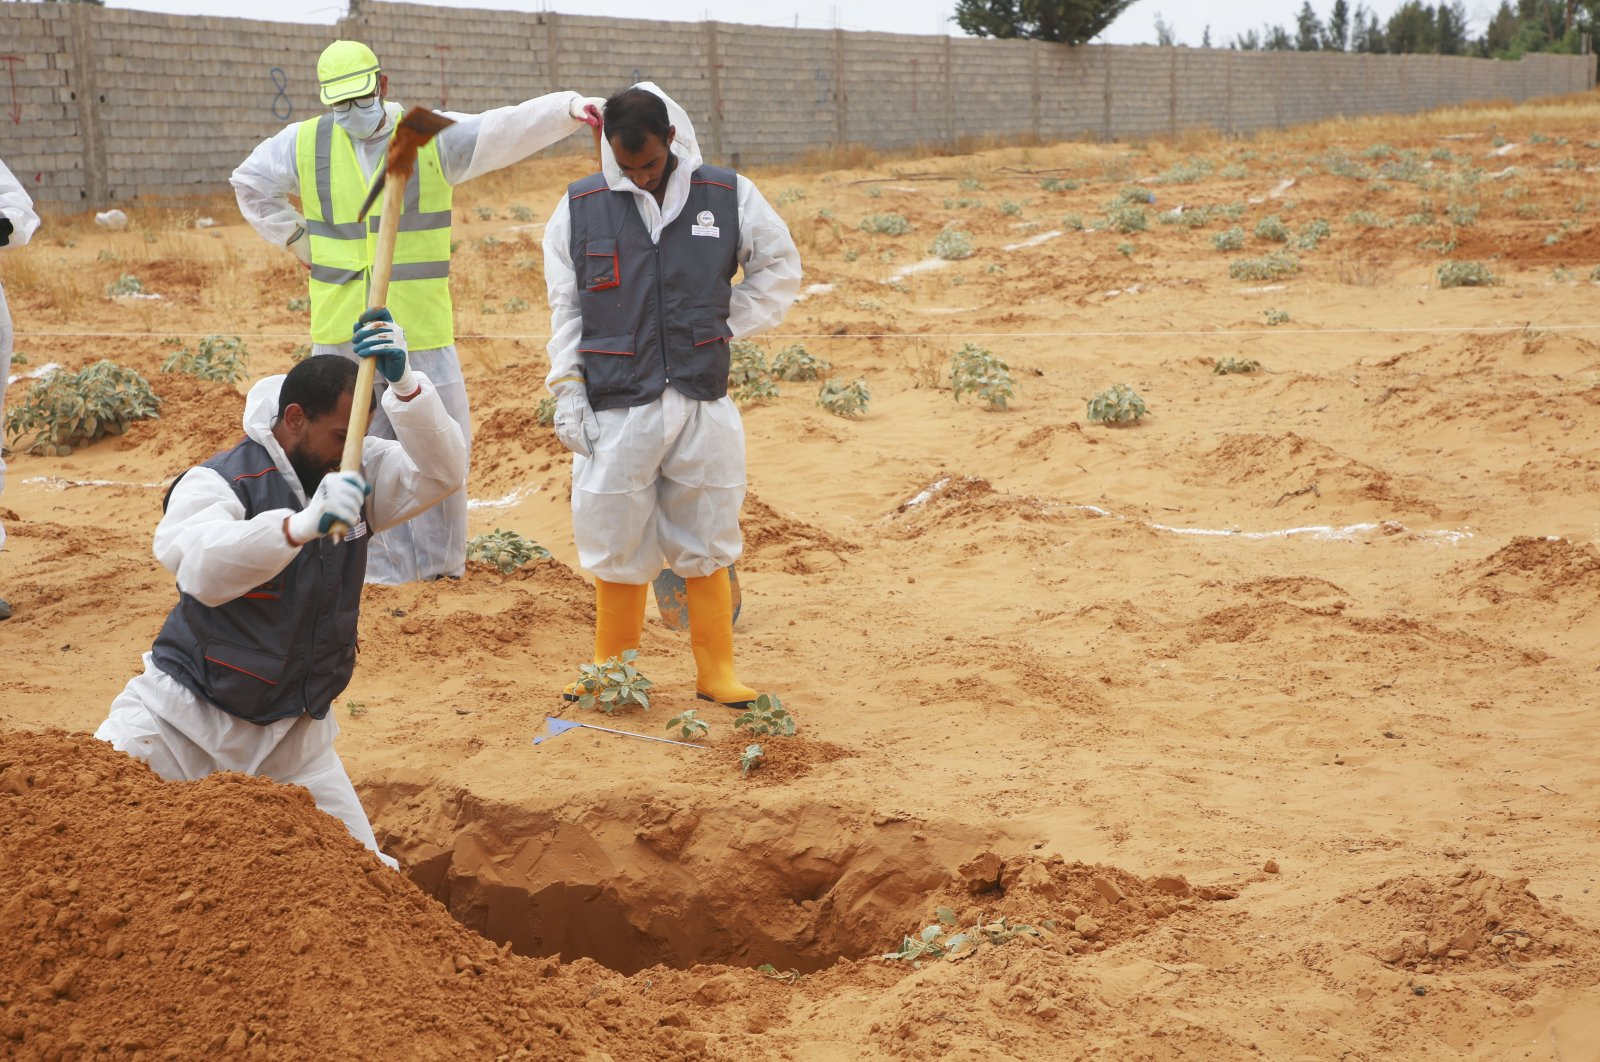 Libyan officials dig at a site of a suspected mass grave in the town of Tarhuna, June 23, 2020. (AP Photo)